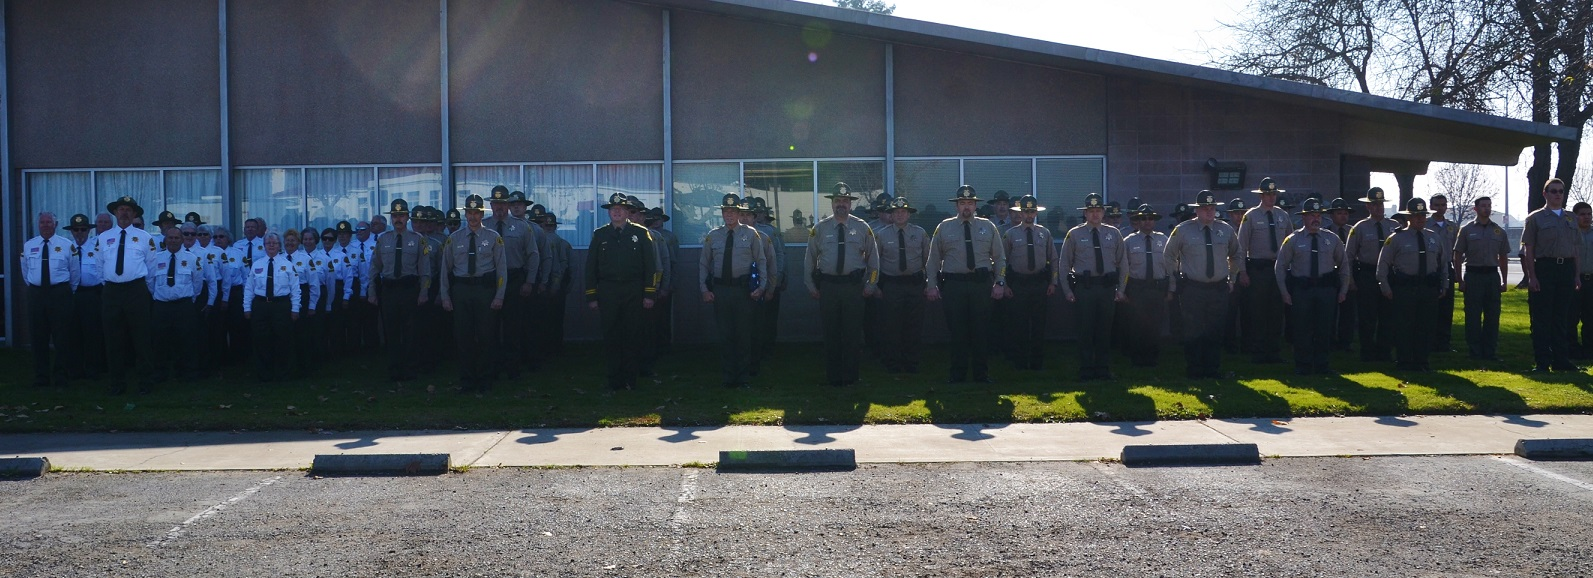 Jay Varney John Anderson and the Madera County Sheriffs Department